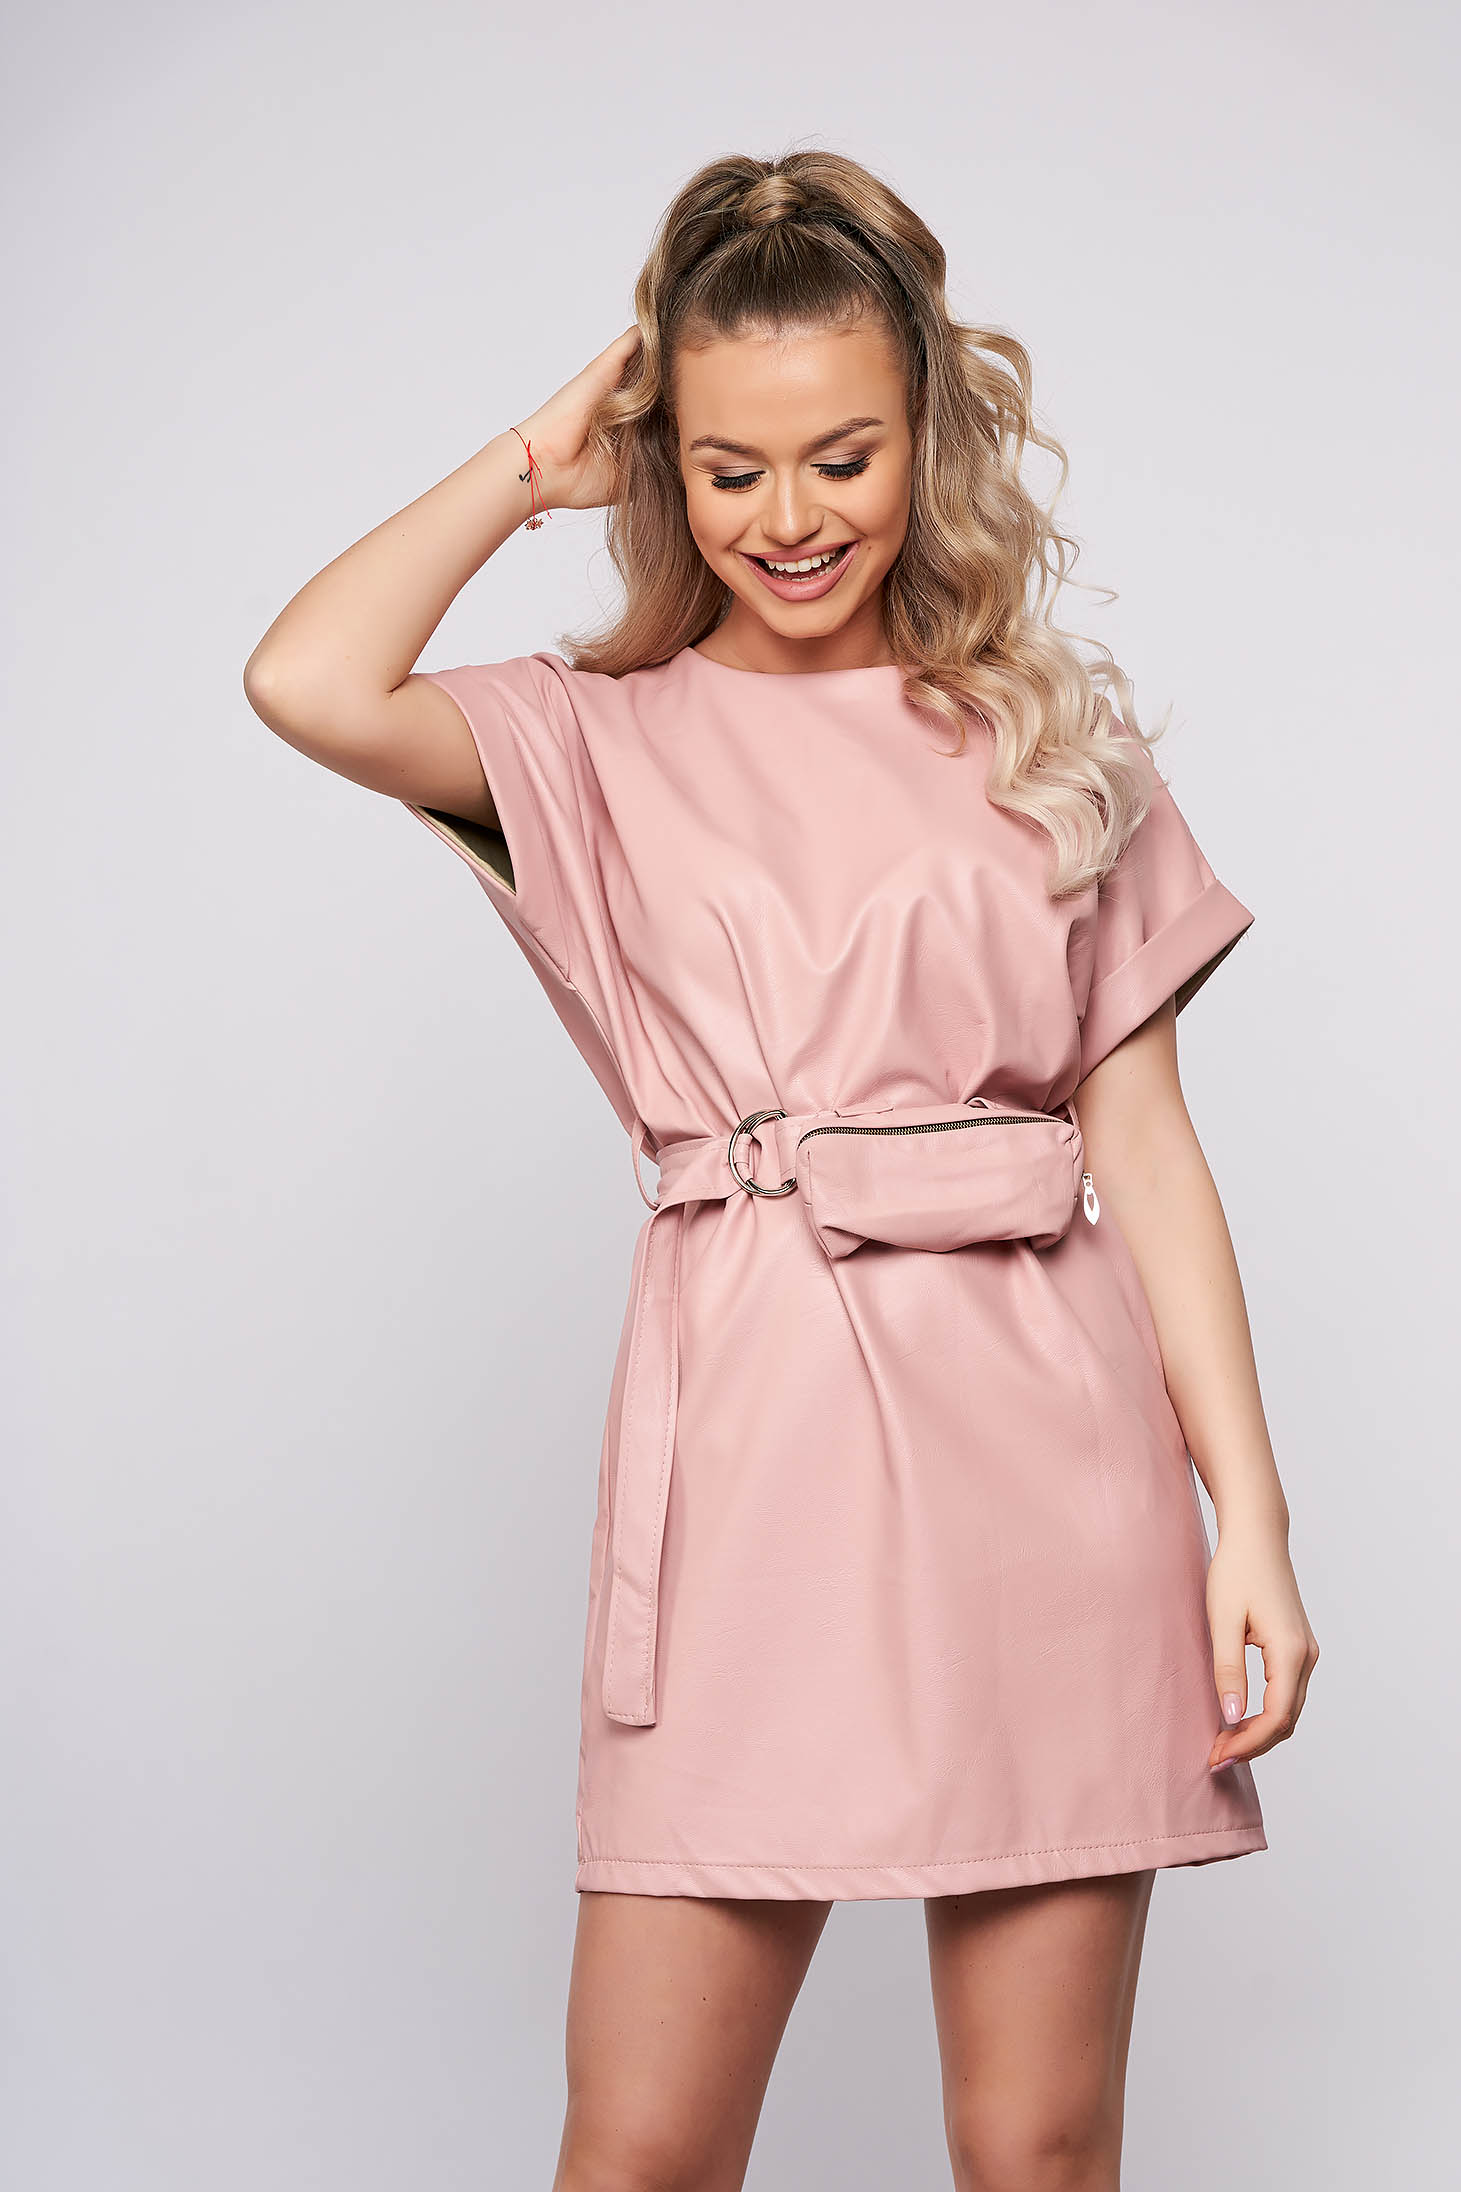 Pink casual straight short cut dress from ecological leather accessorized with belt